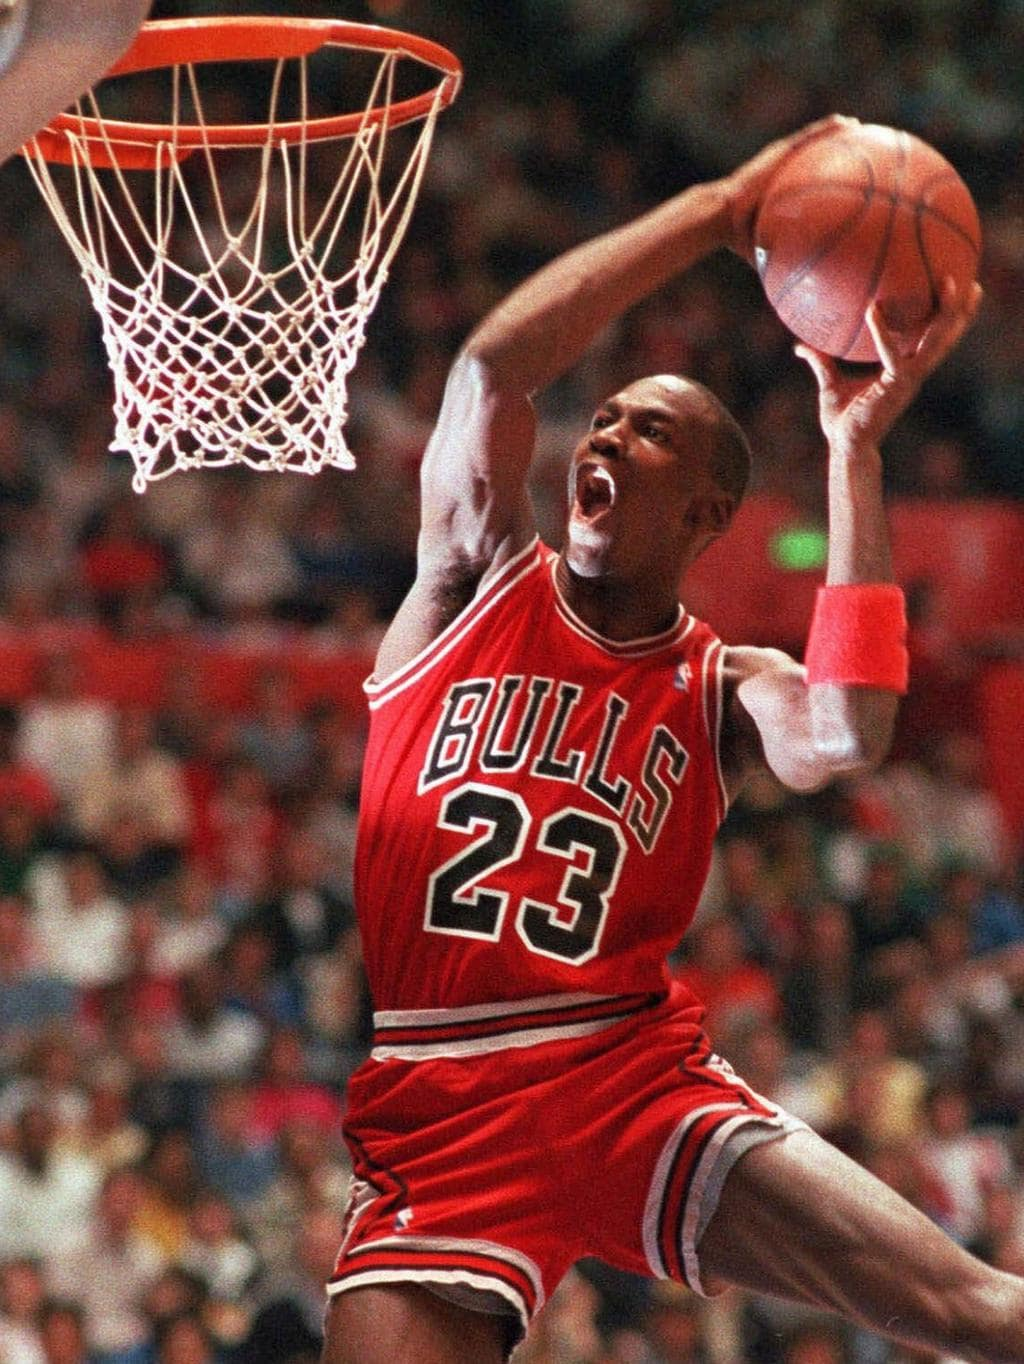 a1031c8e46d NBA legend Michael Jordan is synonymous with the number 23.